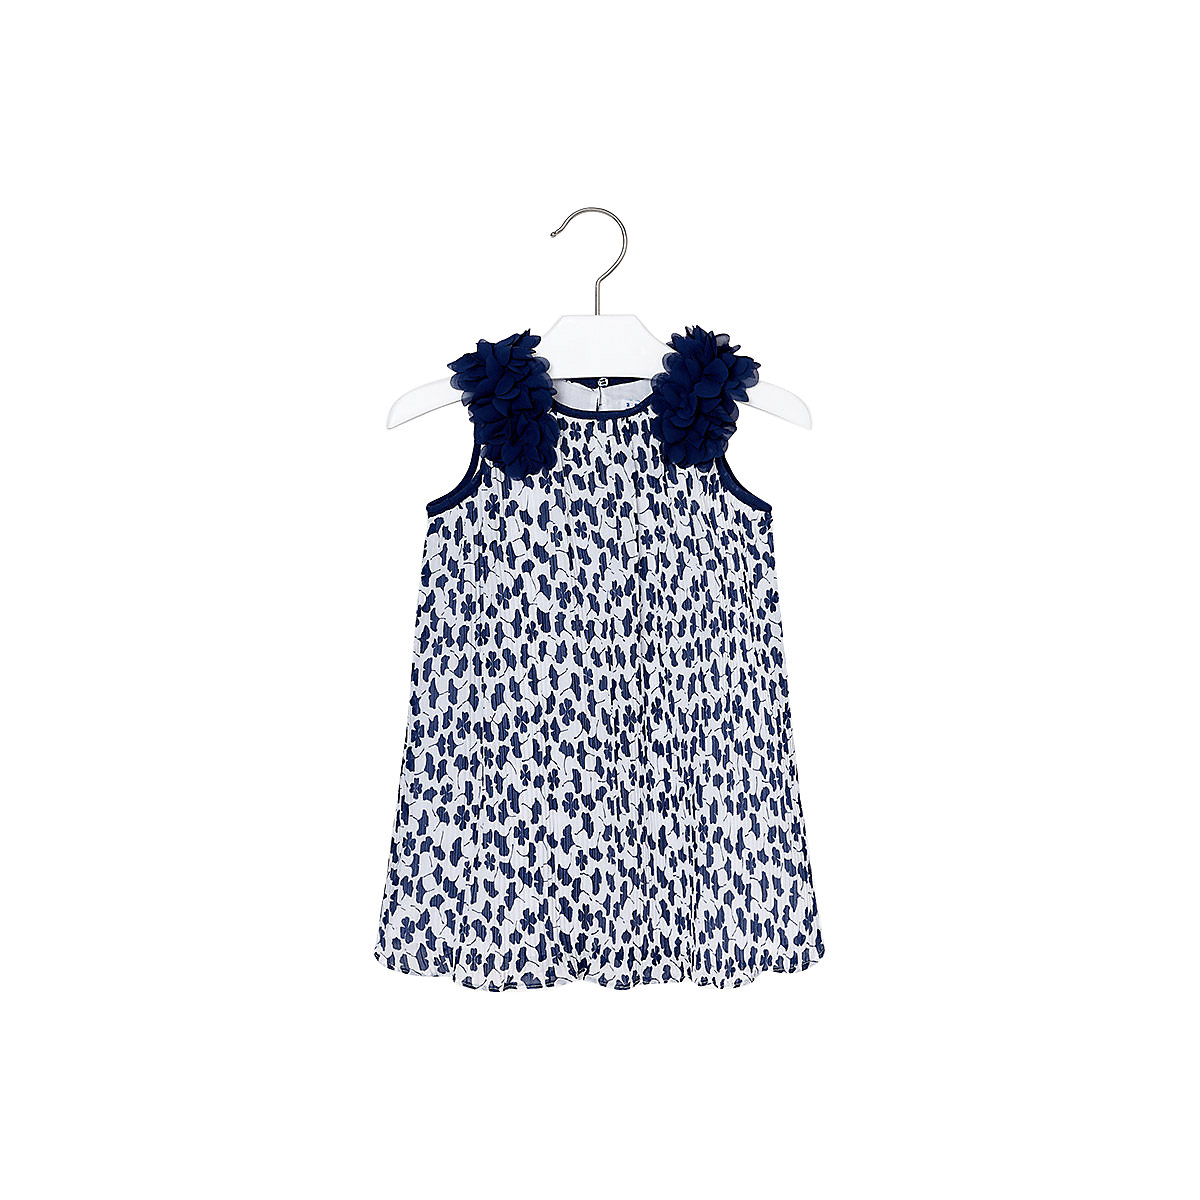 MAYORAL Dresses 10685286 Girl Children Party fitted pleated skirt Blue Polyester Preppy Style Print Knee-Length Sleeveless Sleeve girl print drawstring top